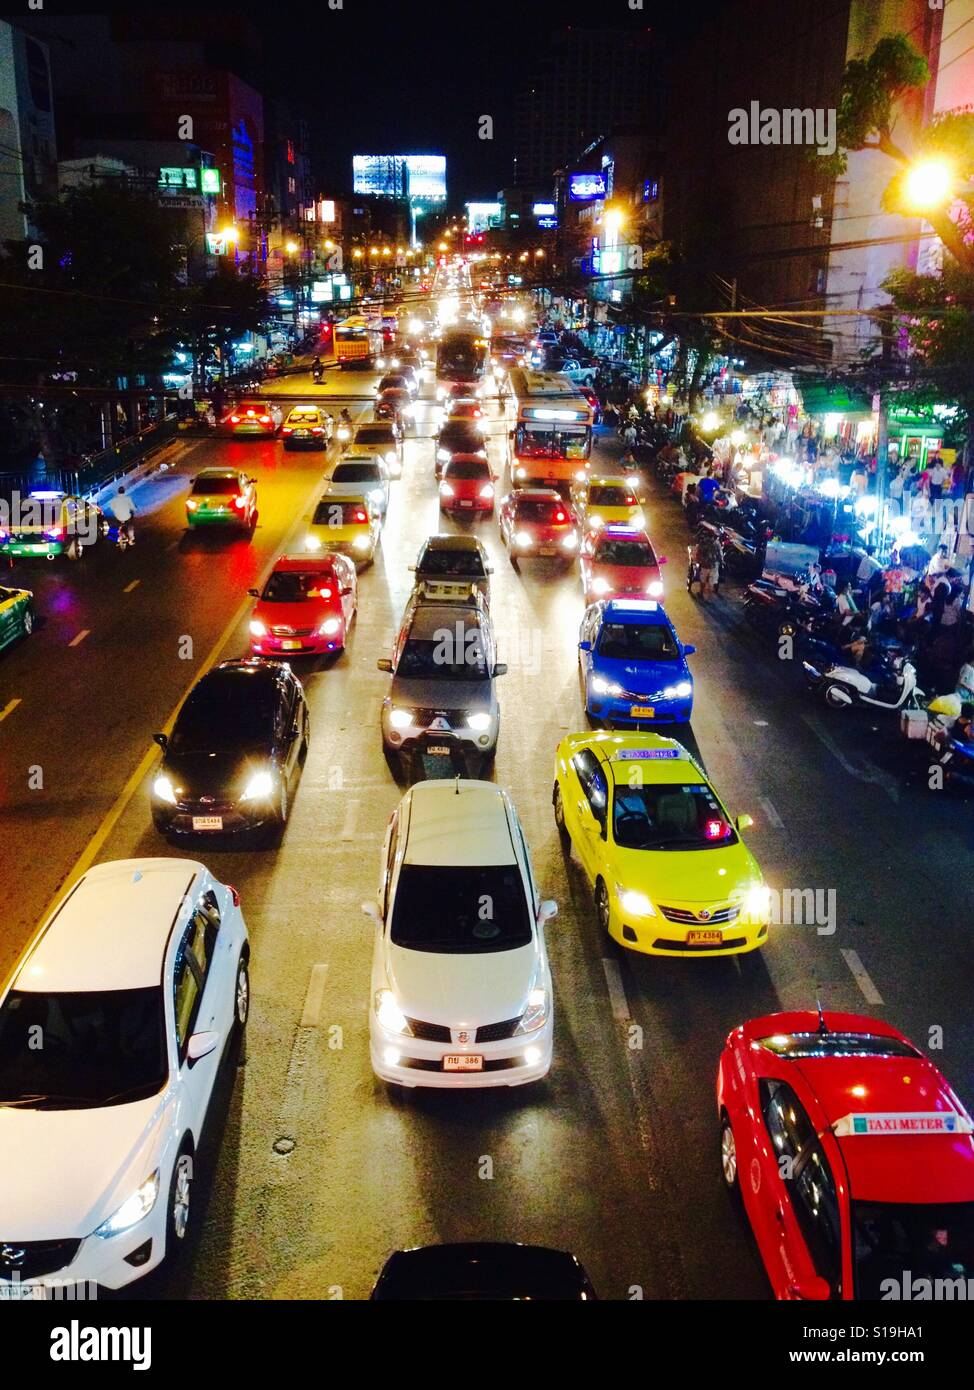 Traffic chaos in the streets of Bangkok - Stock Image